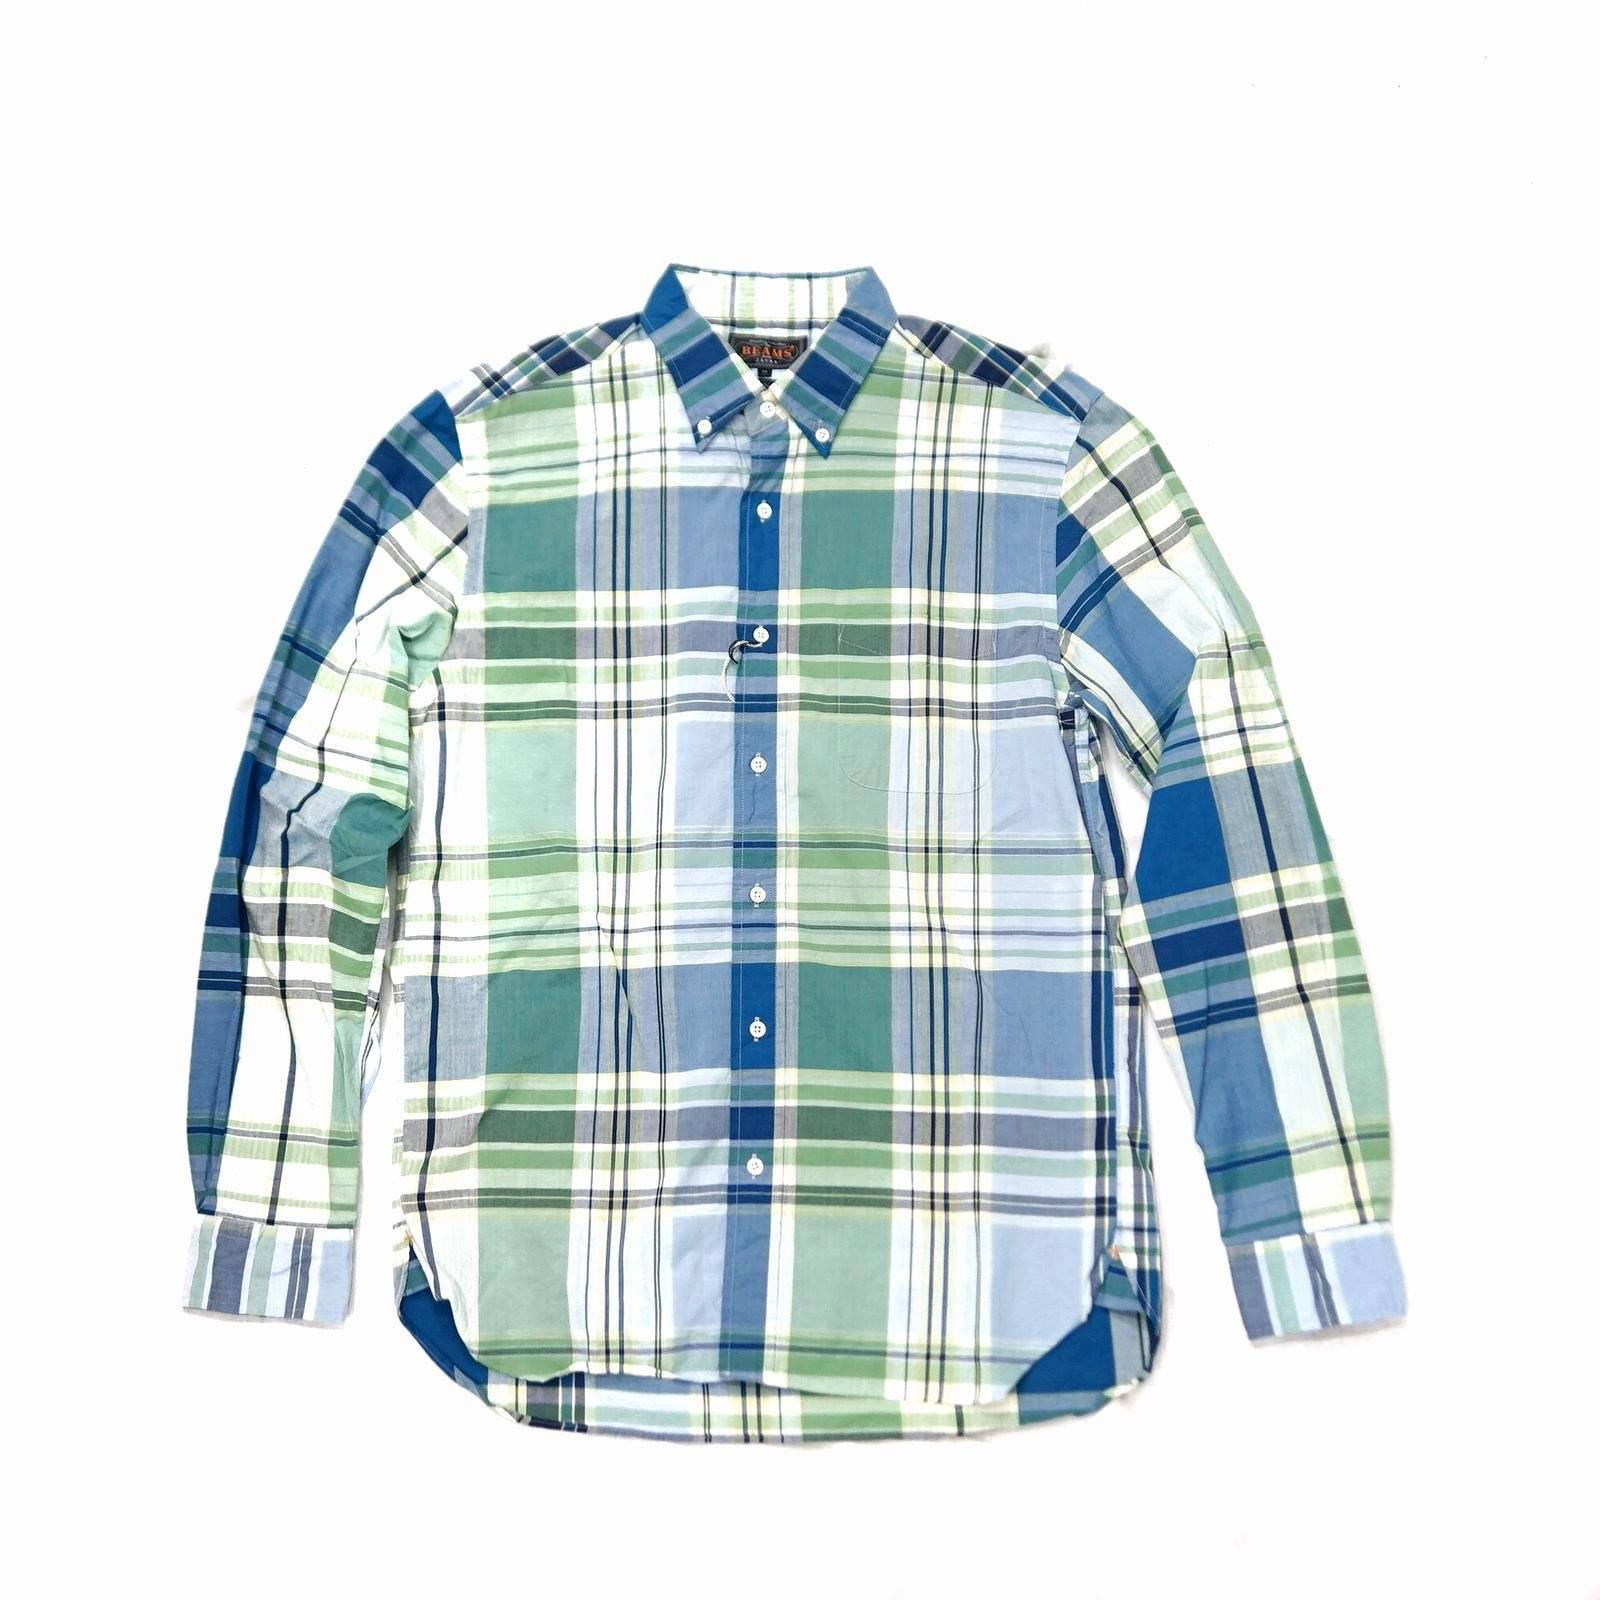 BEAMS + Big Check Shirt